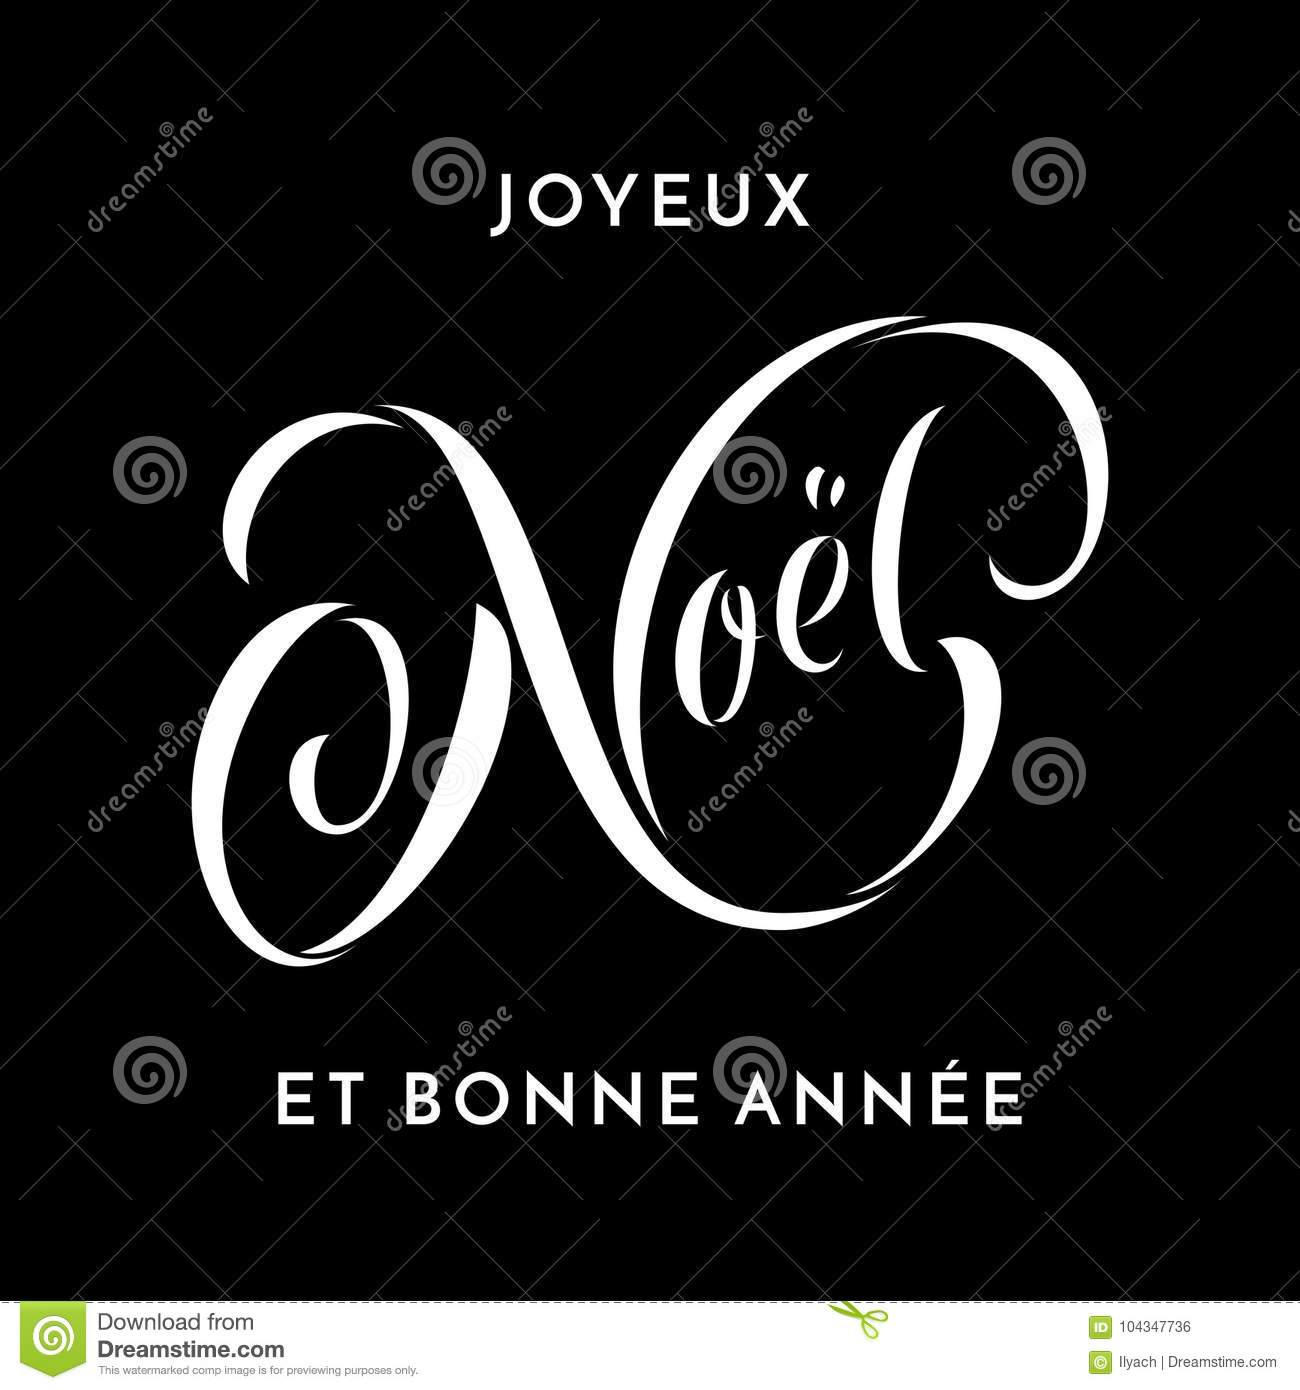 Joyeux Noel Et Bonne Annee French Merry Christmas And Happy New Year